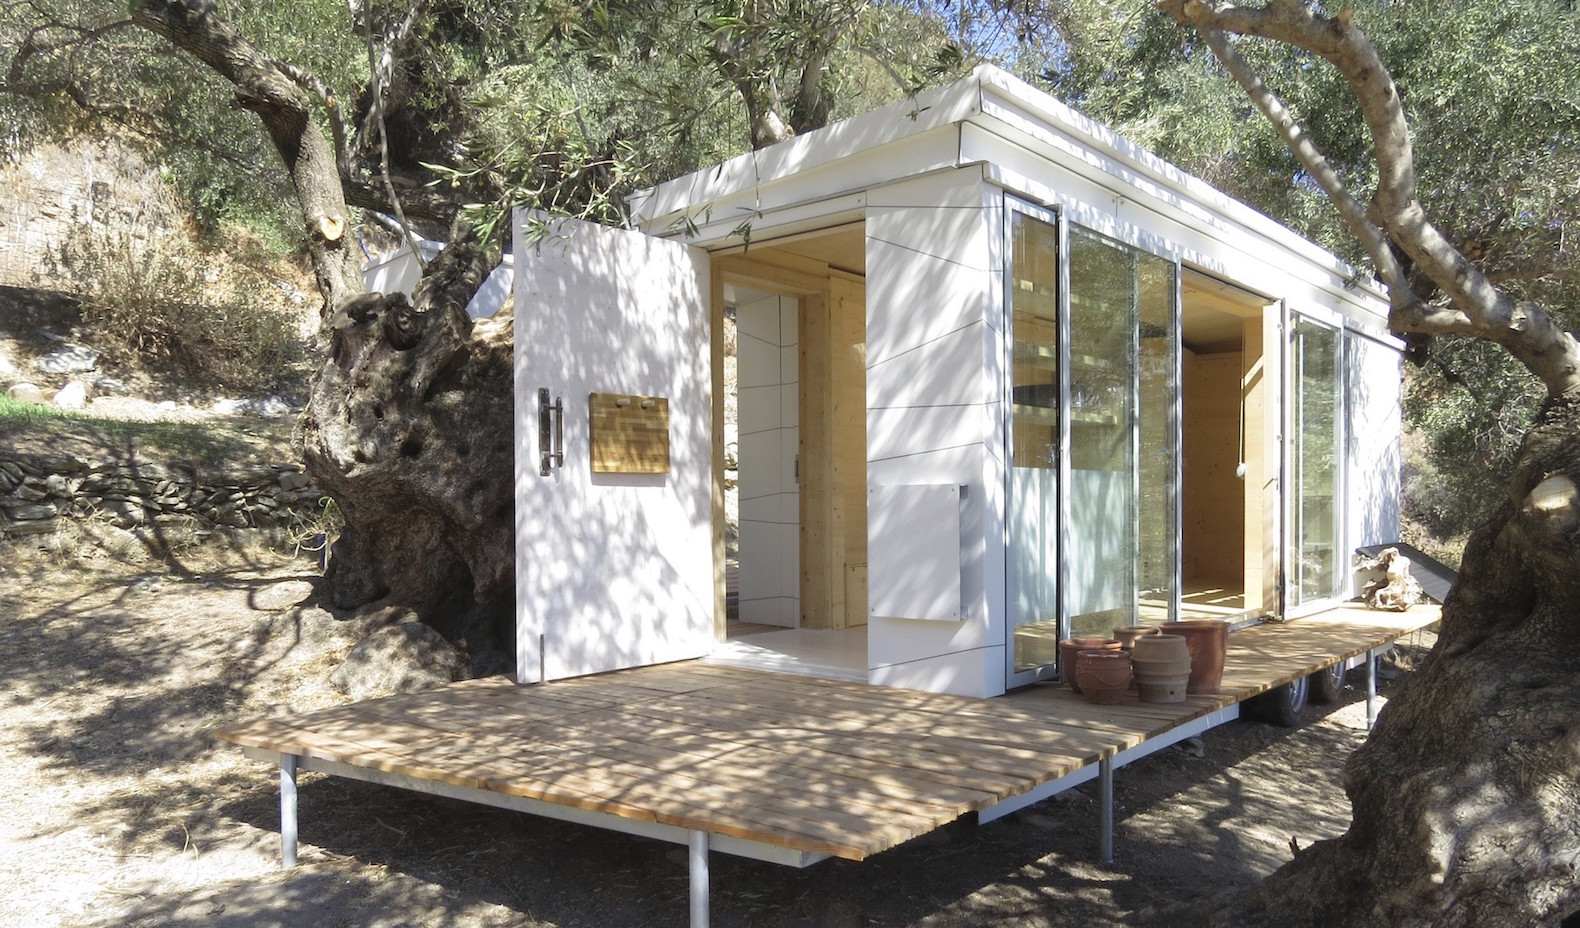 Off Grid Homes For Sale In Colorado - Tiny prefab home is a dreamy off grid retreat on the island of crete